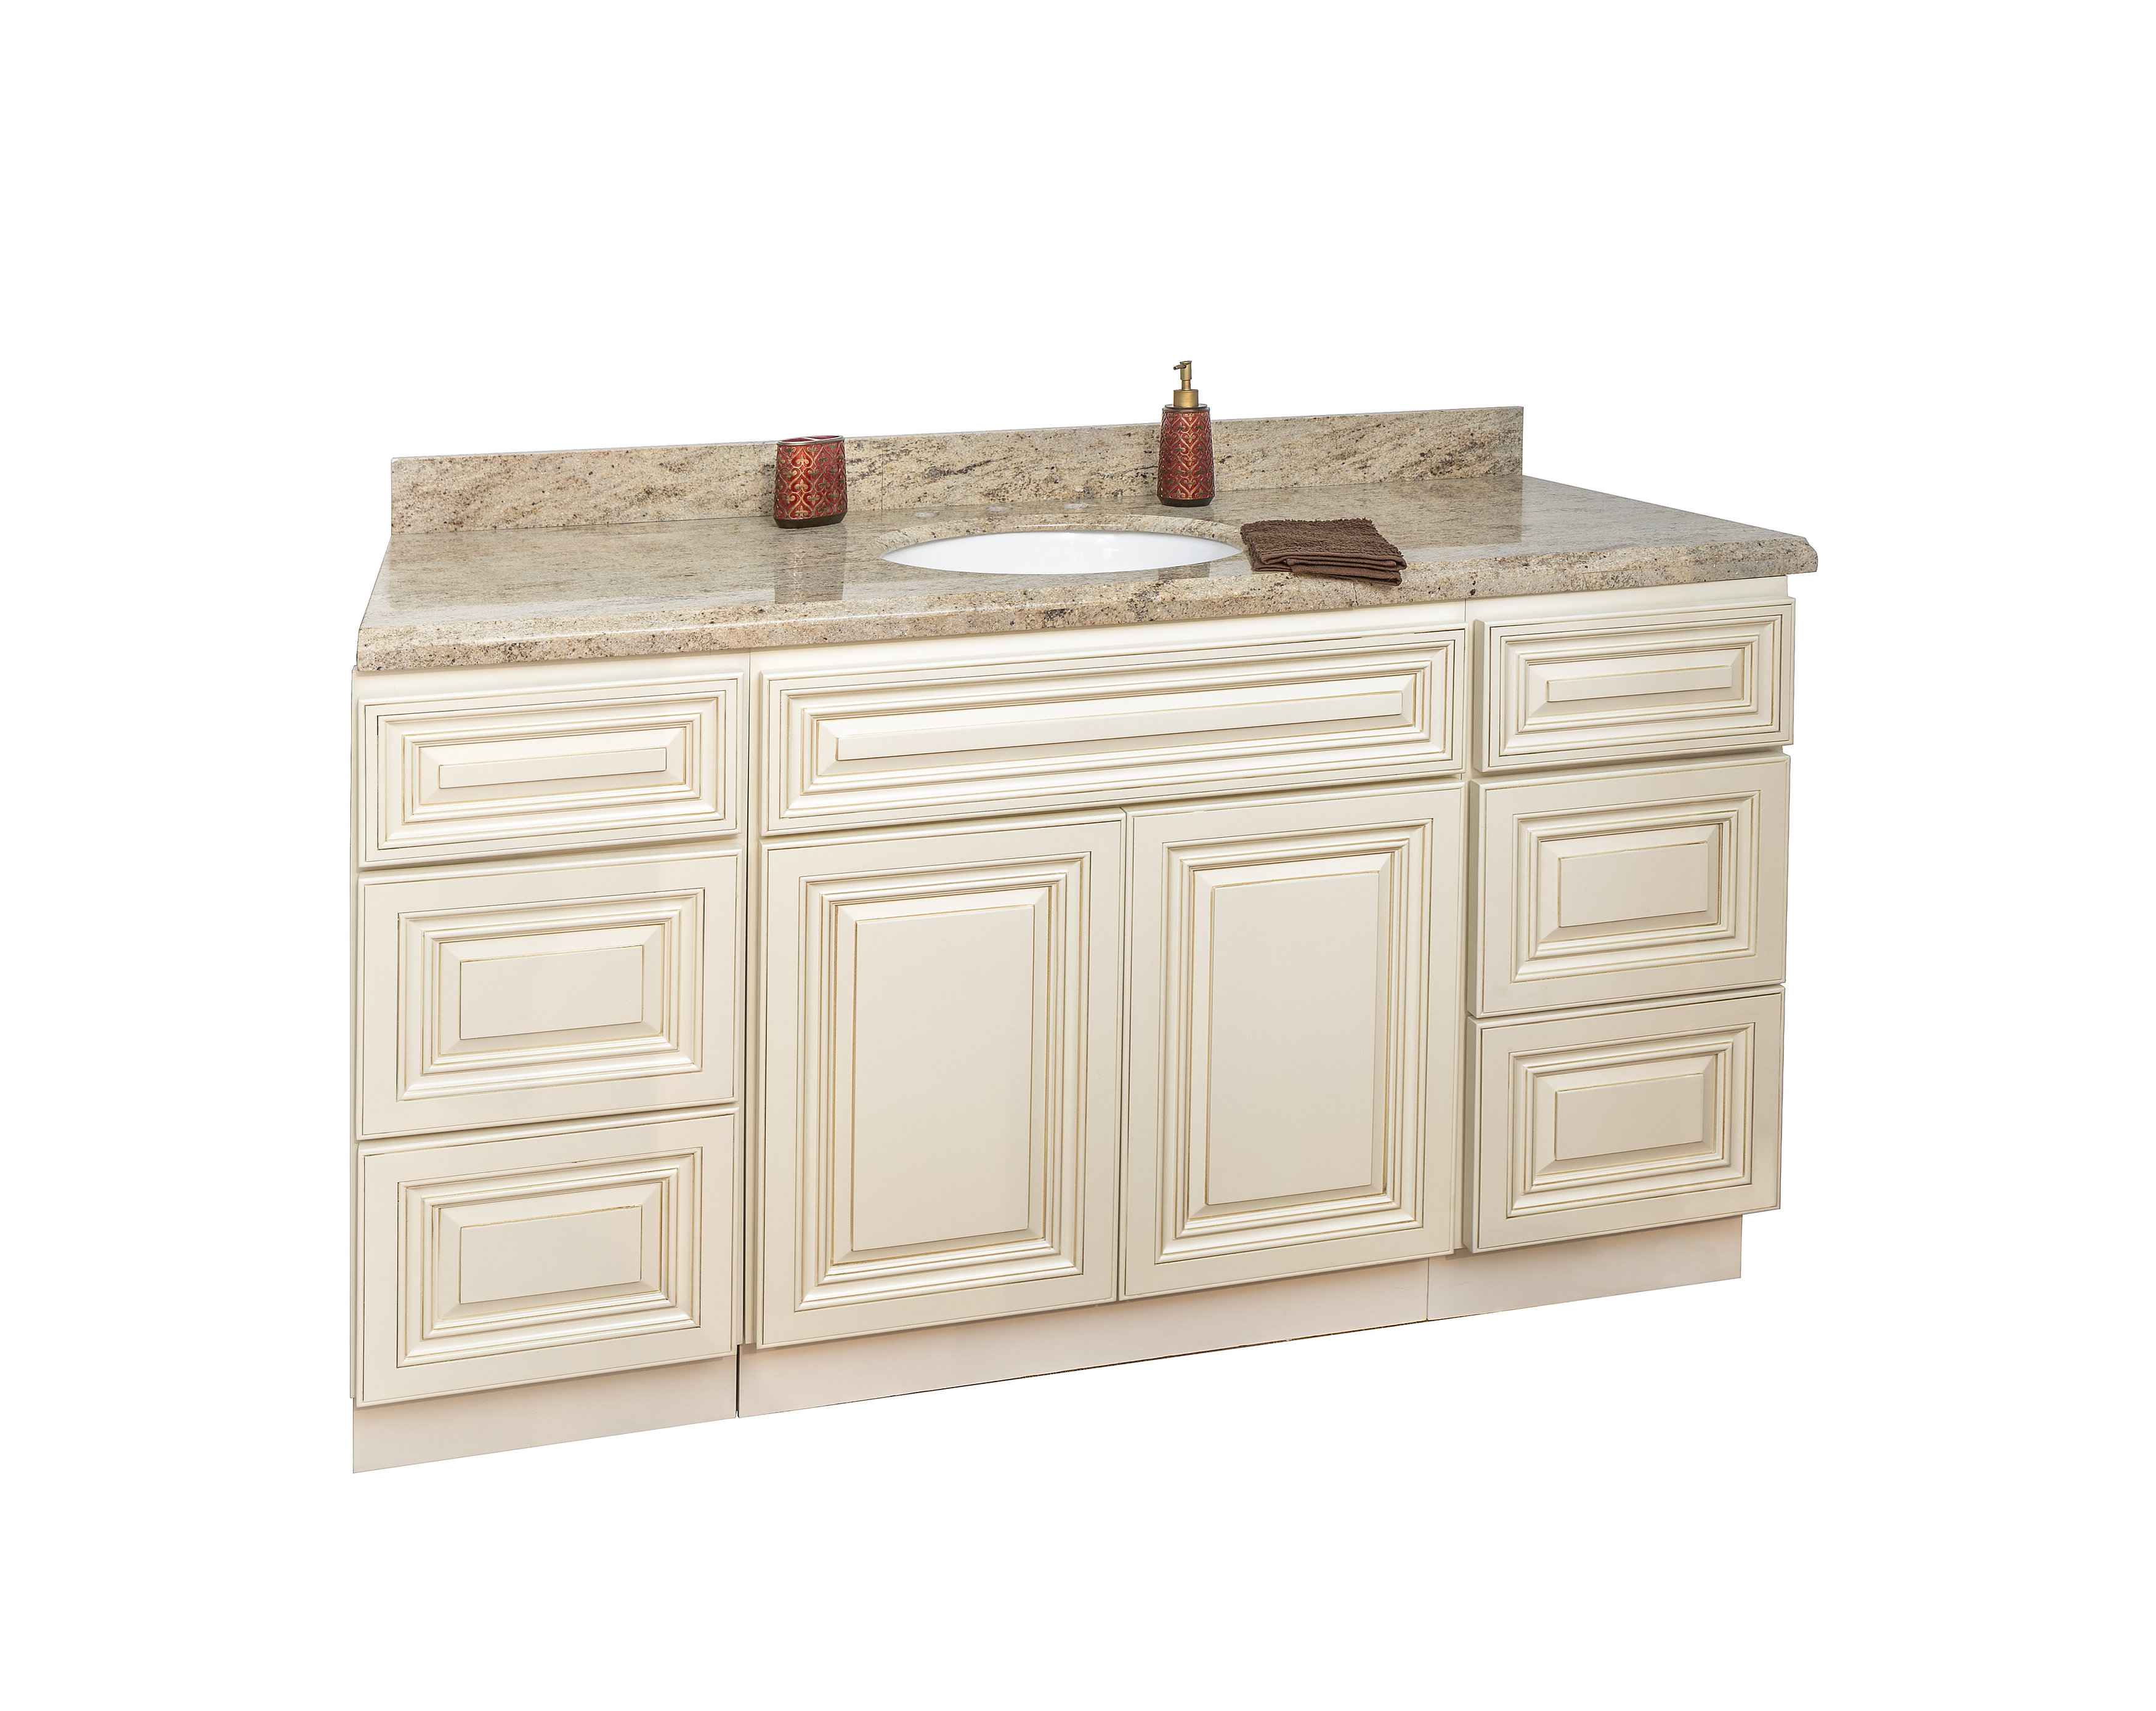 Discount Kitchen Cabinets San Diego Best Wholesale Bathroom Vanities In San Diego Blog